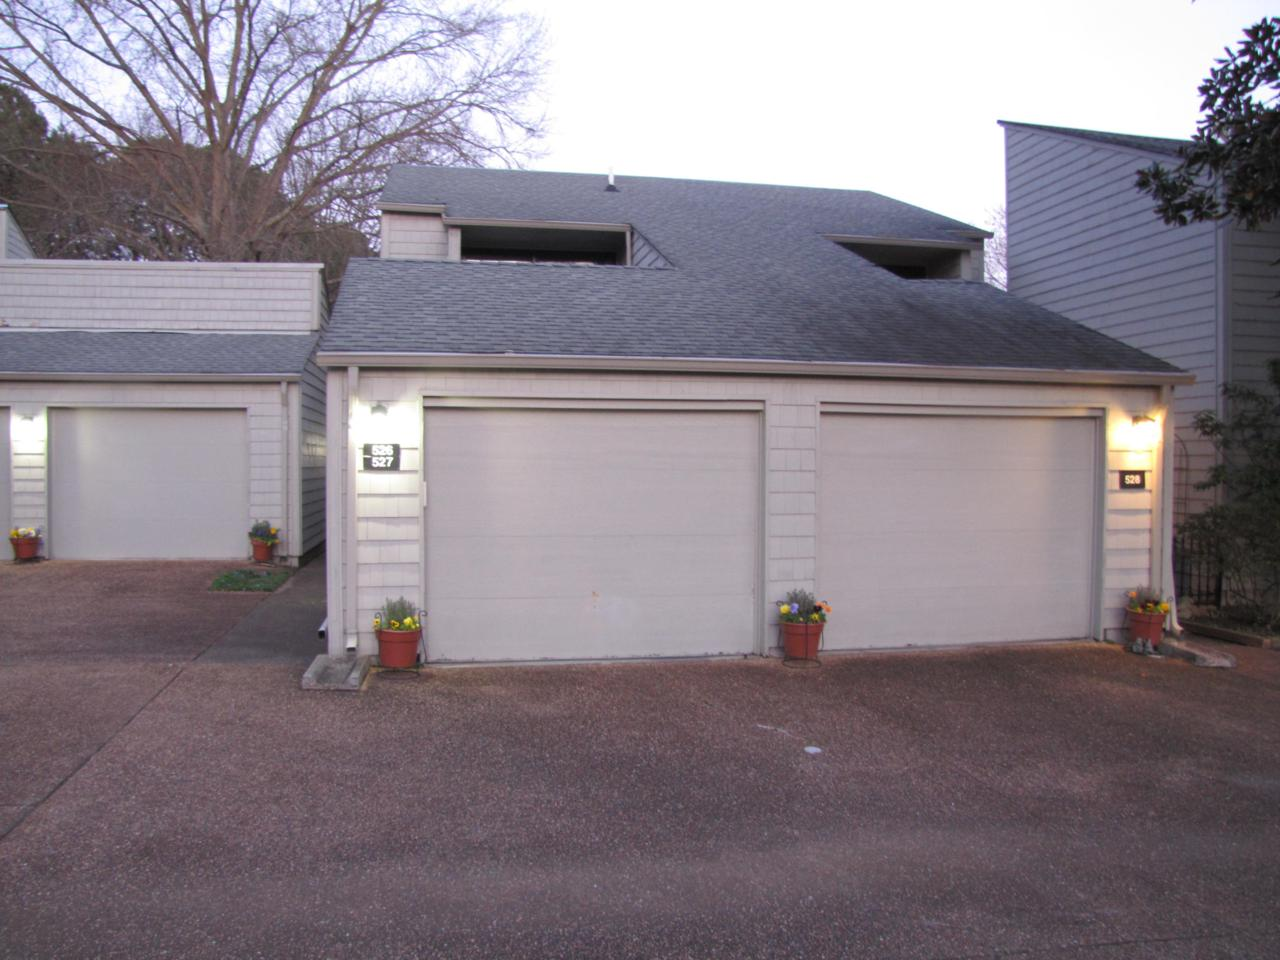 Garage Doors Knoxville 527 Lost Tree Lane Knoxville Tn 37934 1074242 Tennessee Elite Realty